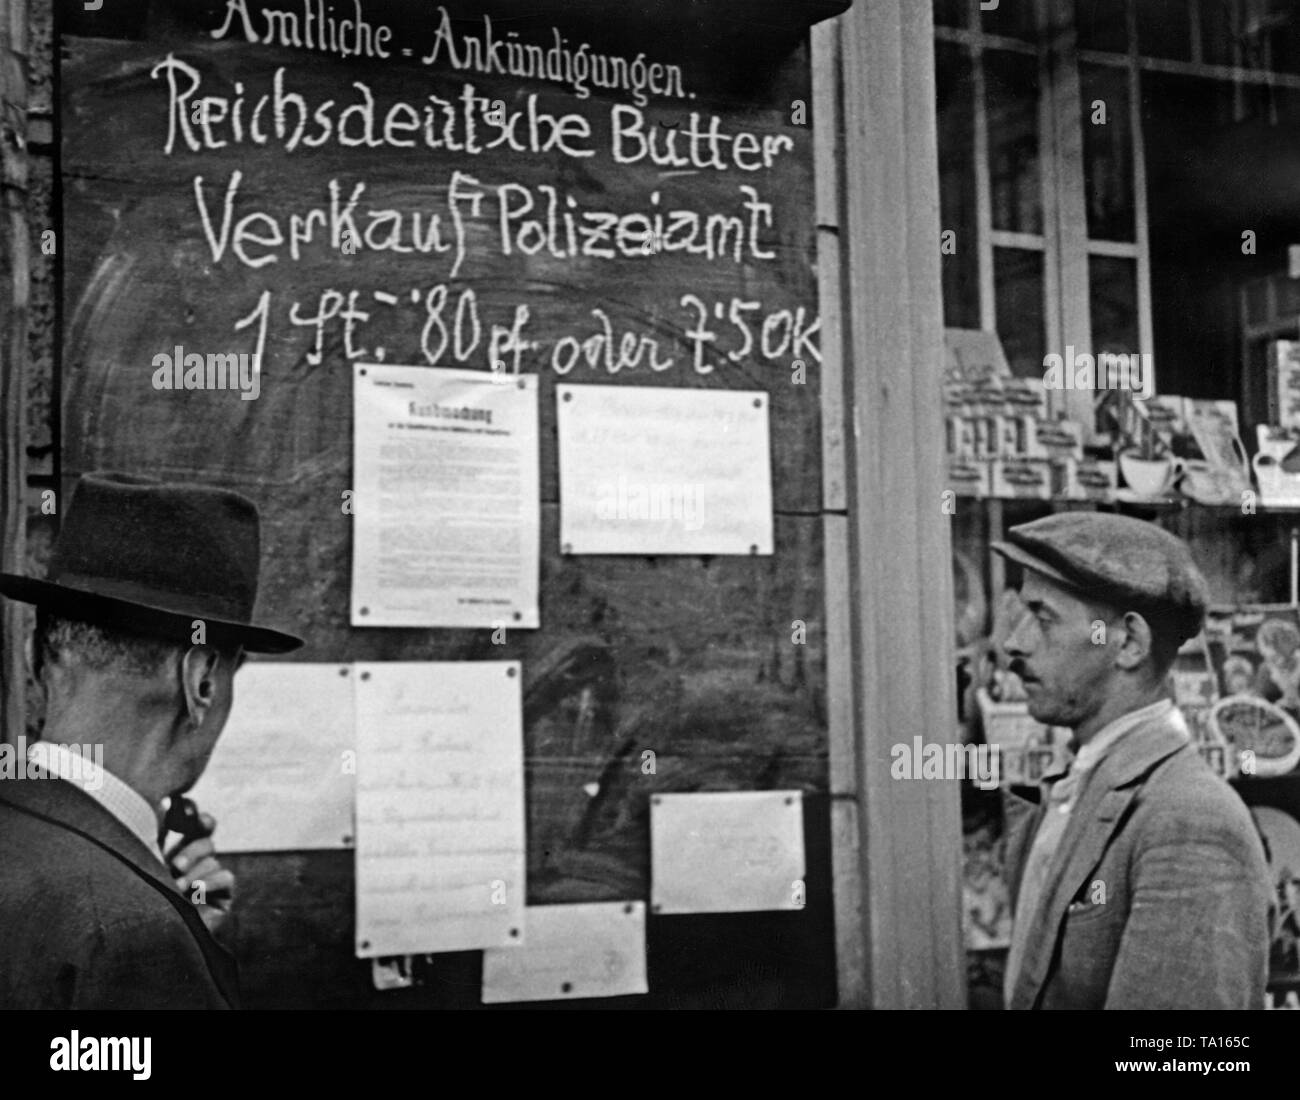 On a bulletin board after the occupation of the Sudetenland by Germany: 'Official announcements. Butter from the German Reich. Sale Police Office. 1 piece - 80 pf. or 7'5 OK '. Below, some written notes attached. - Stock Image